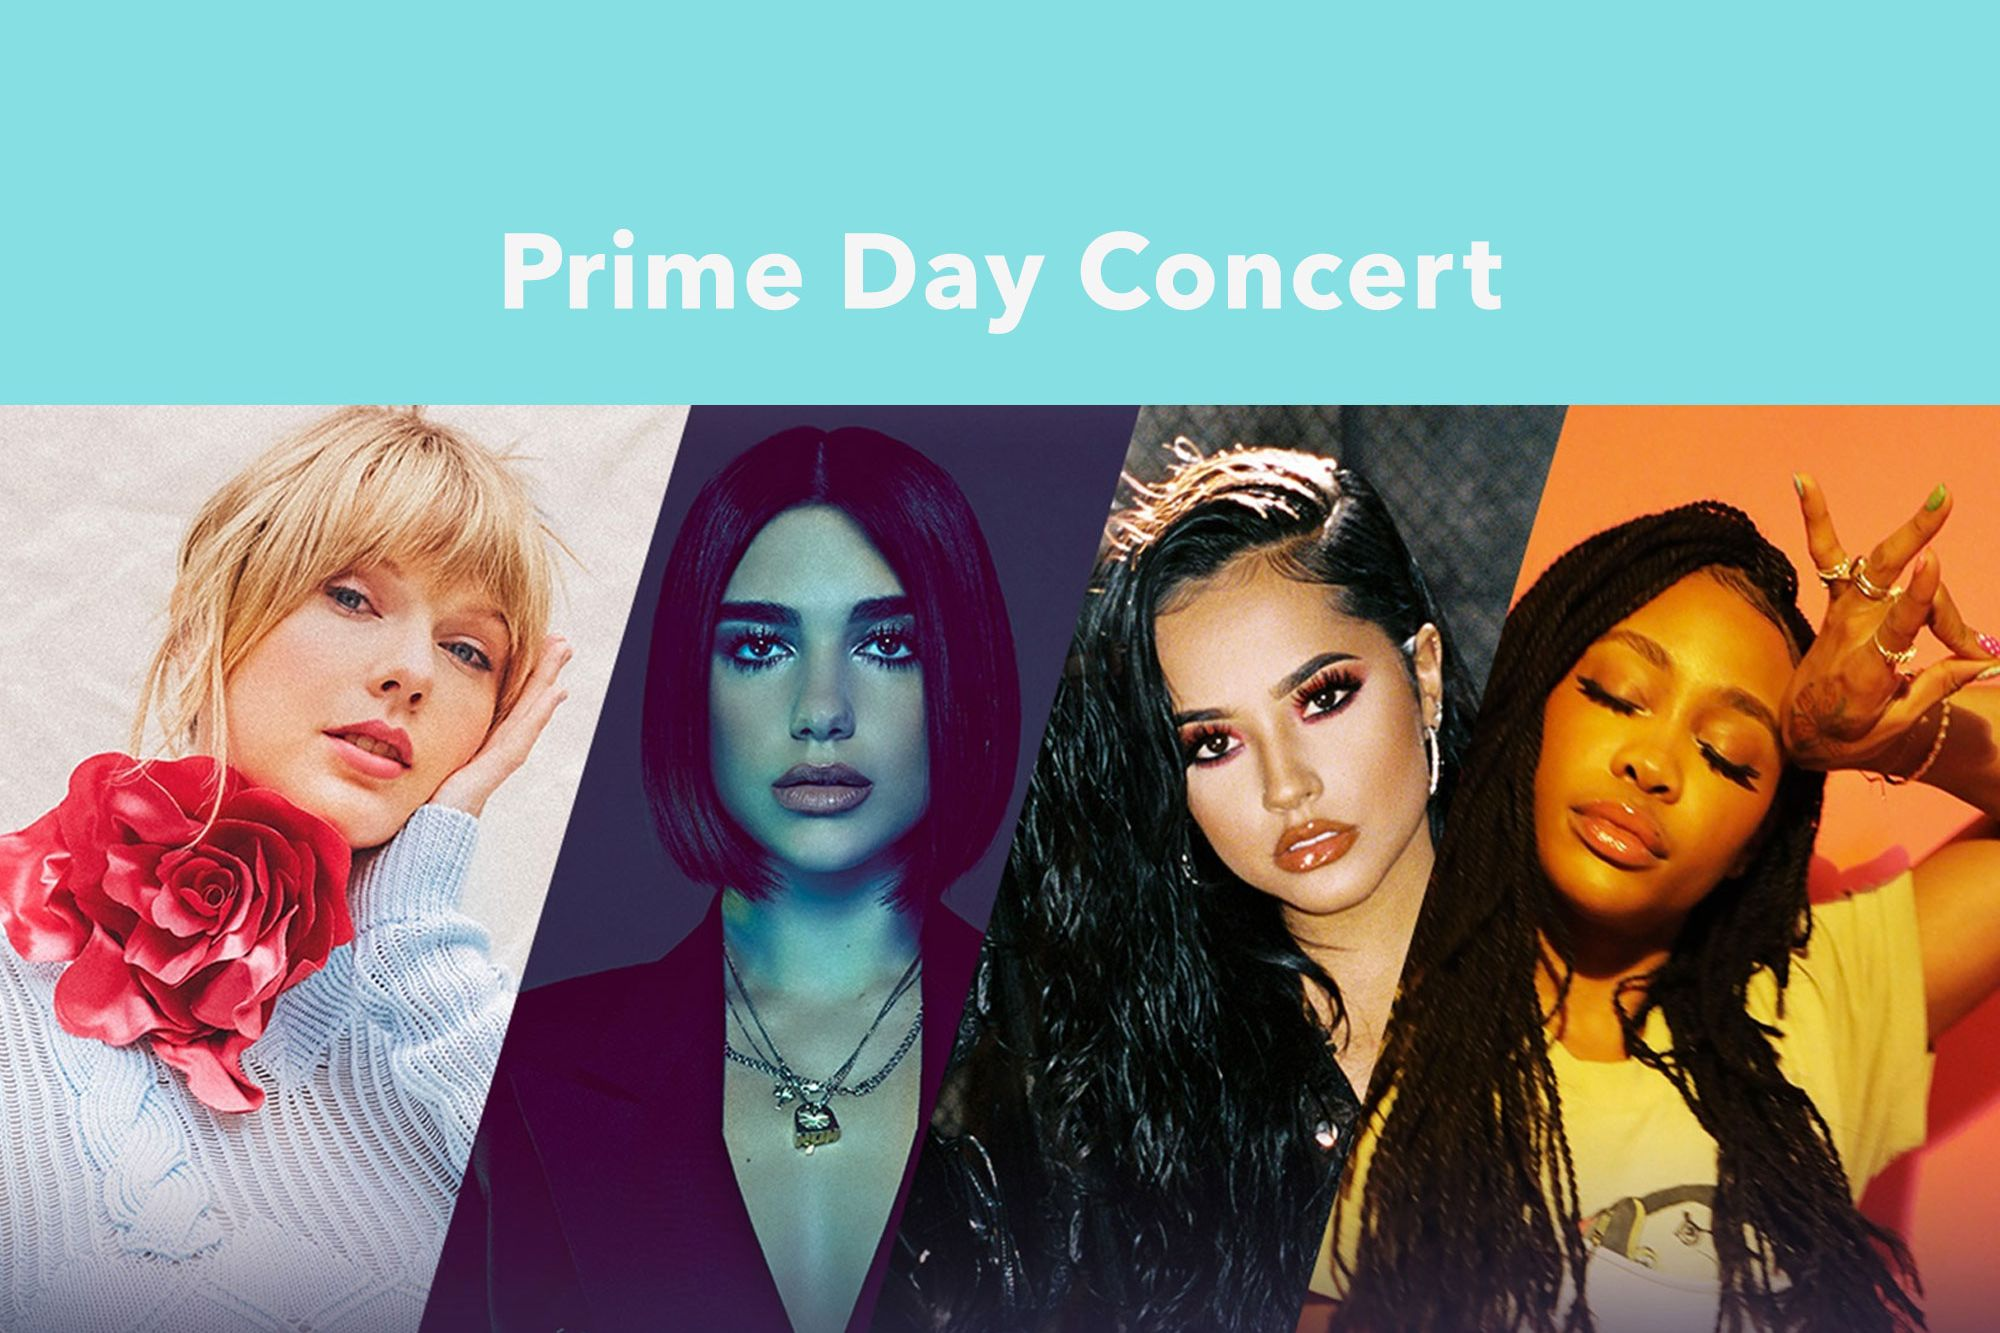 Amazon Announces Prime Day Concert With Taylor Swift